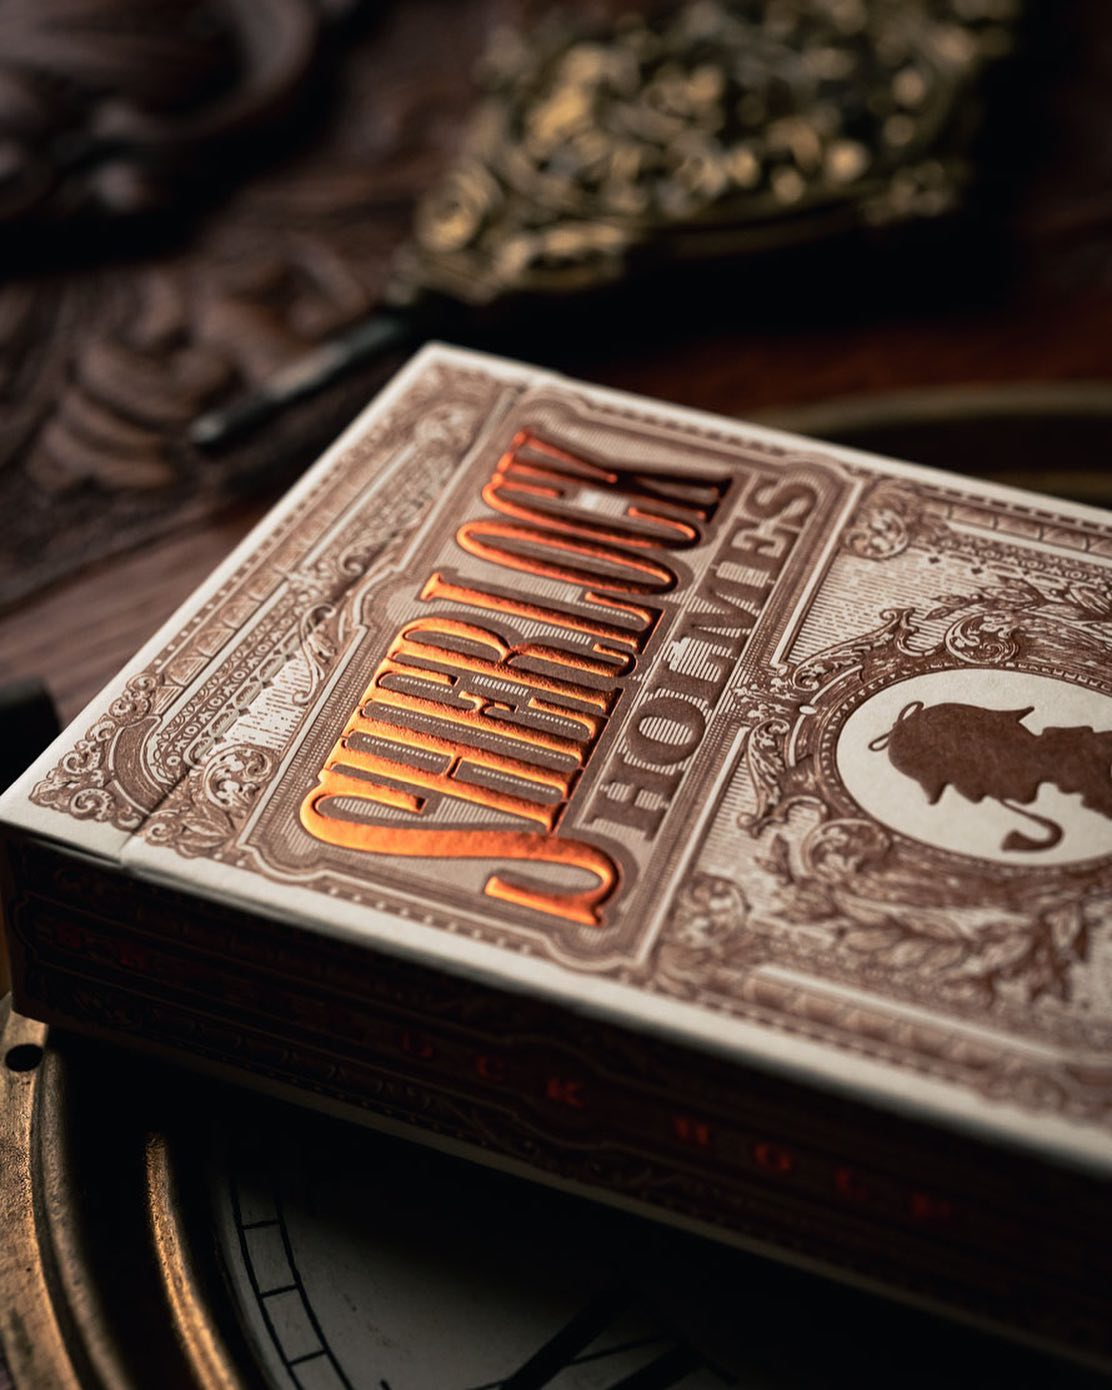 Sherlock Holmes Playing cards are designed by Jackson Robinson and produced by Kings wild project. Based on the legendary detective the Sherlock holmes playing cards feature all main characters of the Sherlock holmes novel and movie and are collectable.